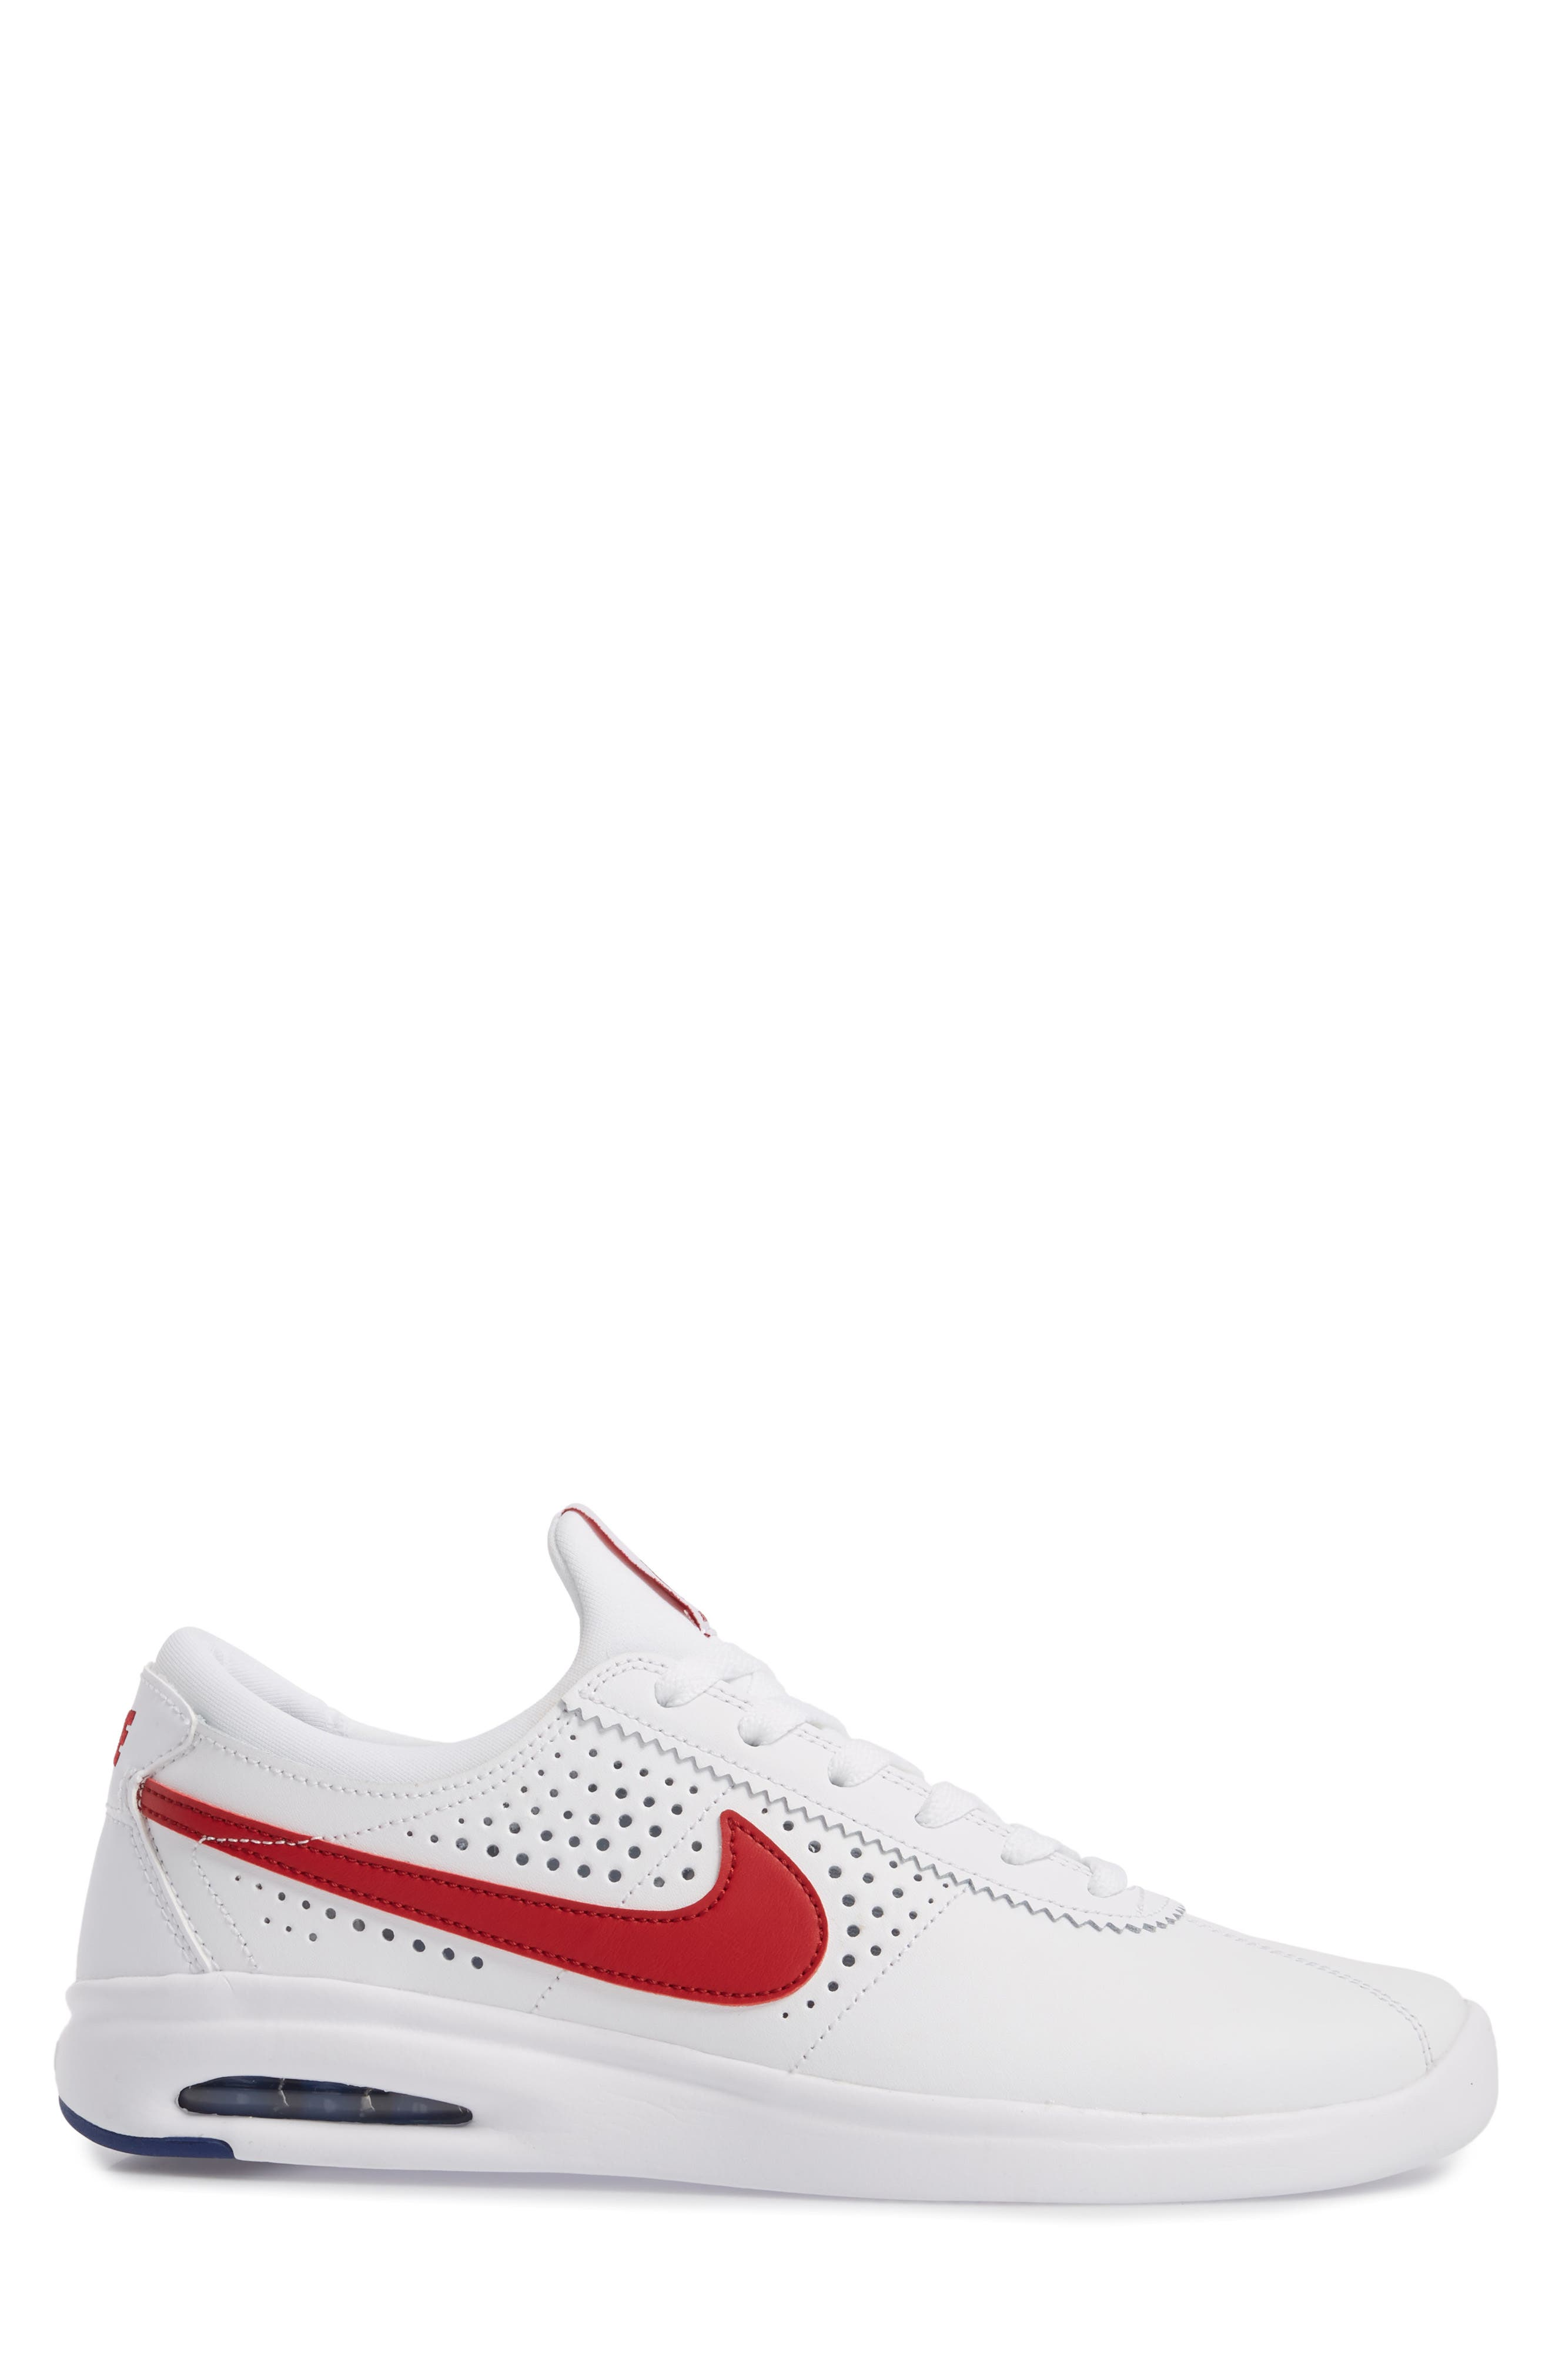 SB Air Max Bruin Vapor Skateboarding Sneaker,                             Alternate thumbnail 3, color,                             100